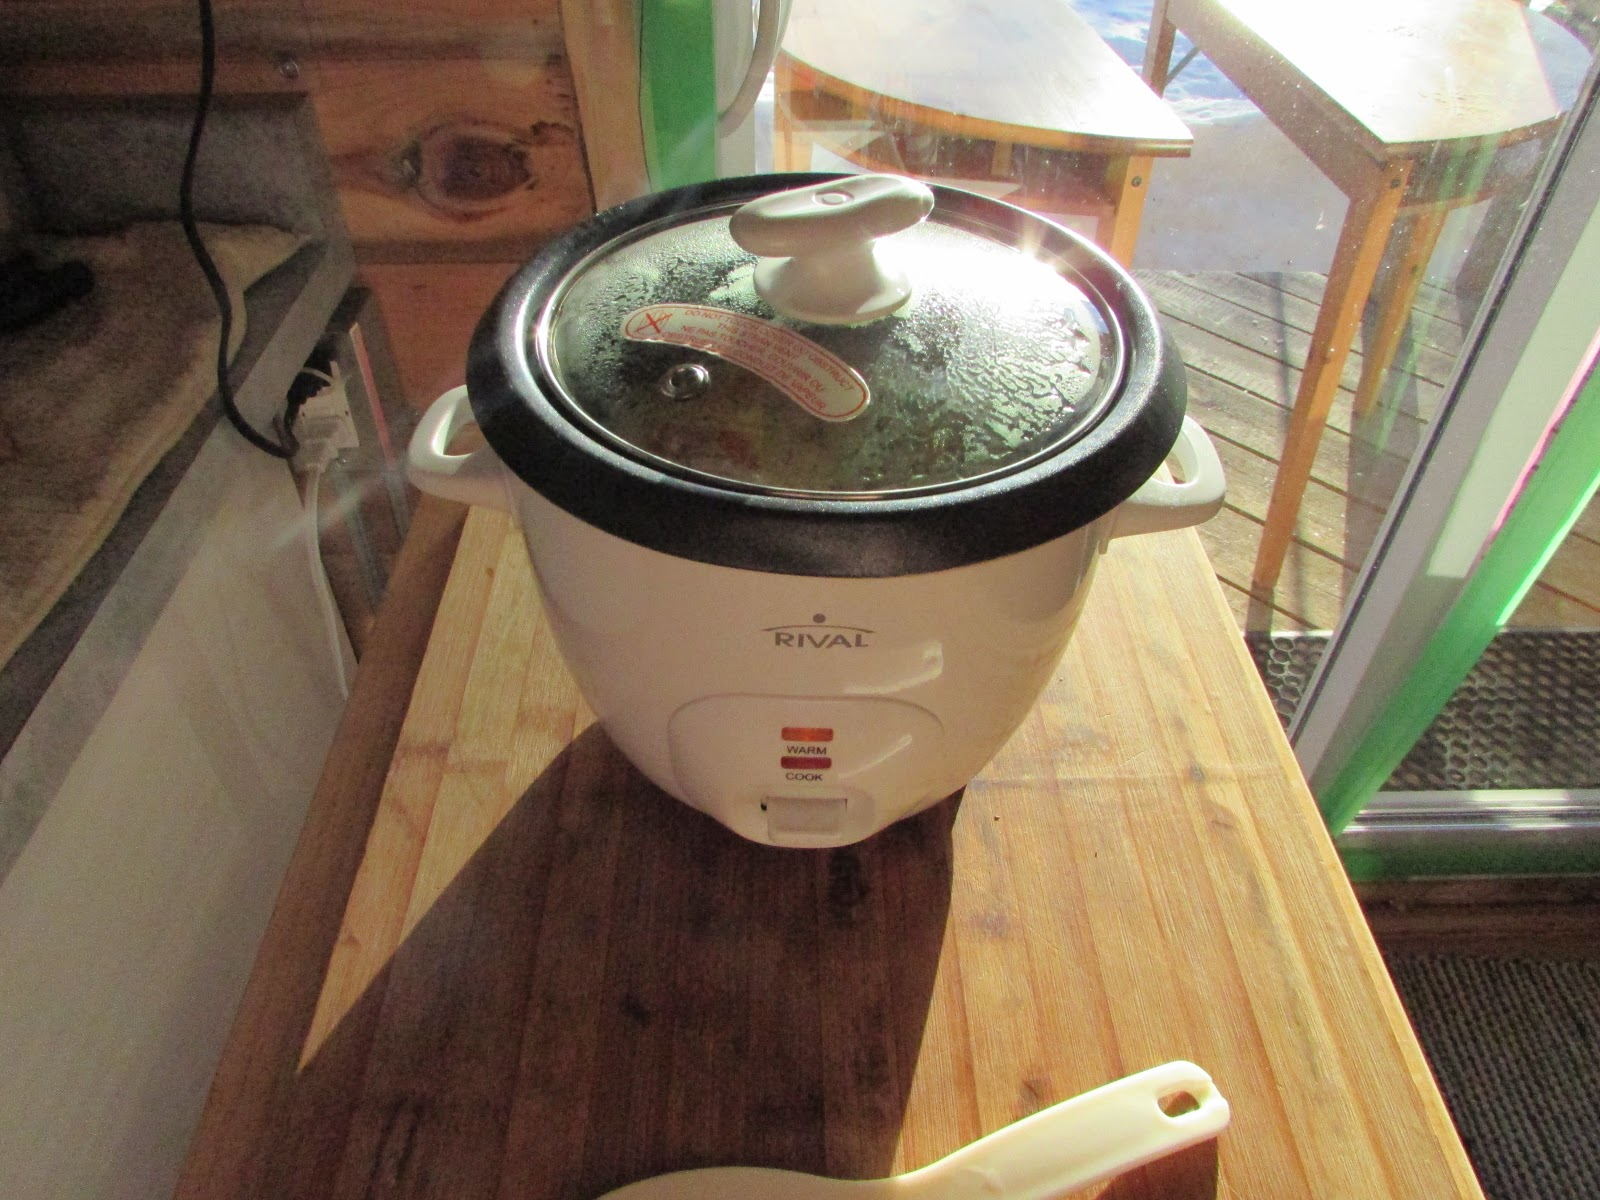 Can i cook eggs in a rice cooker